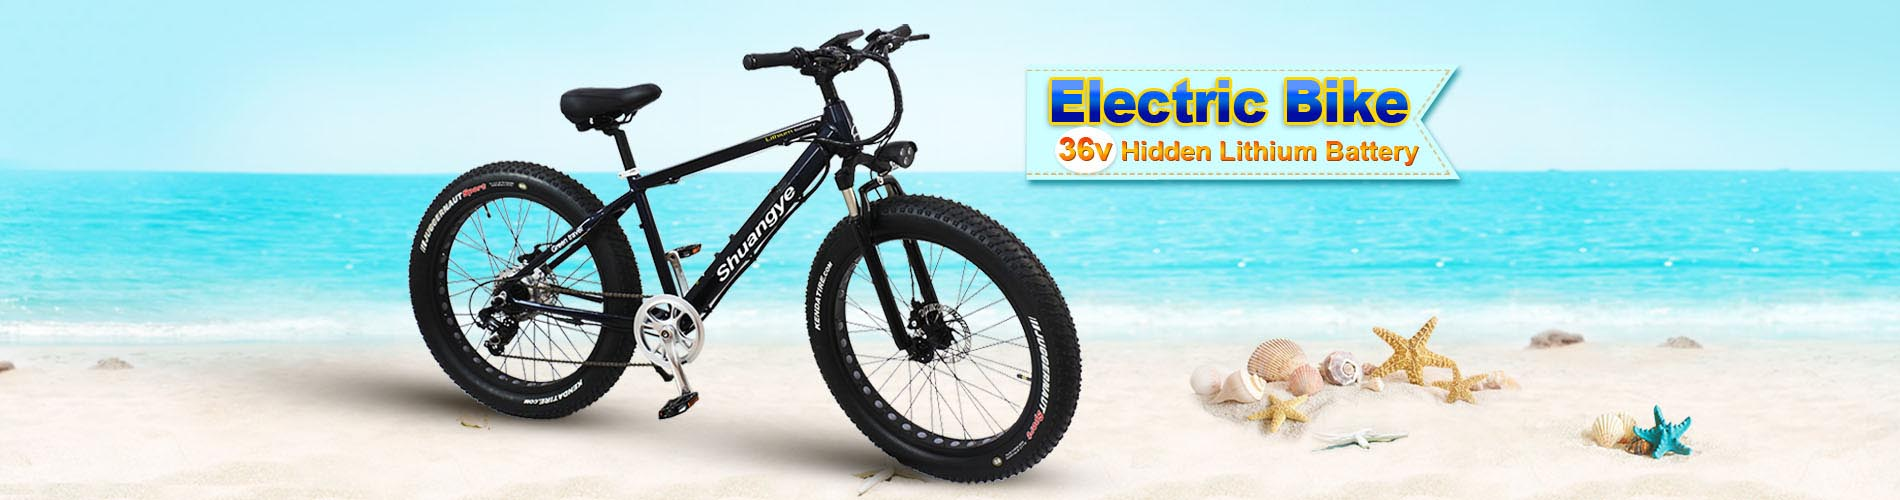 electric pedal bike axle